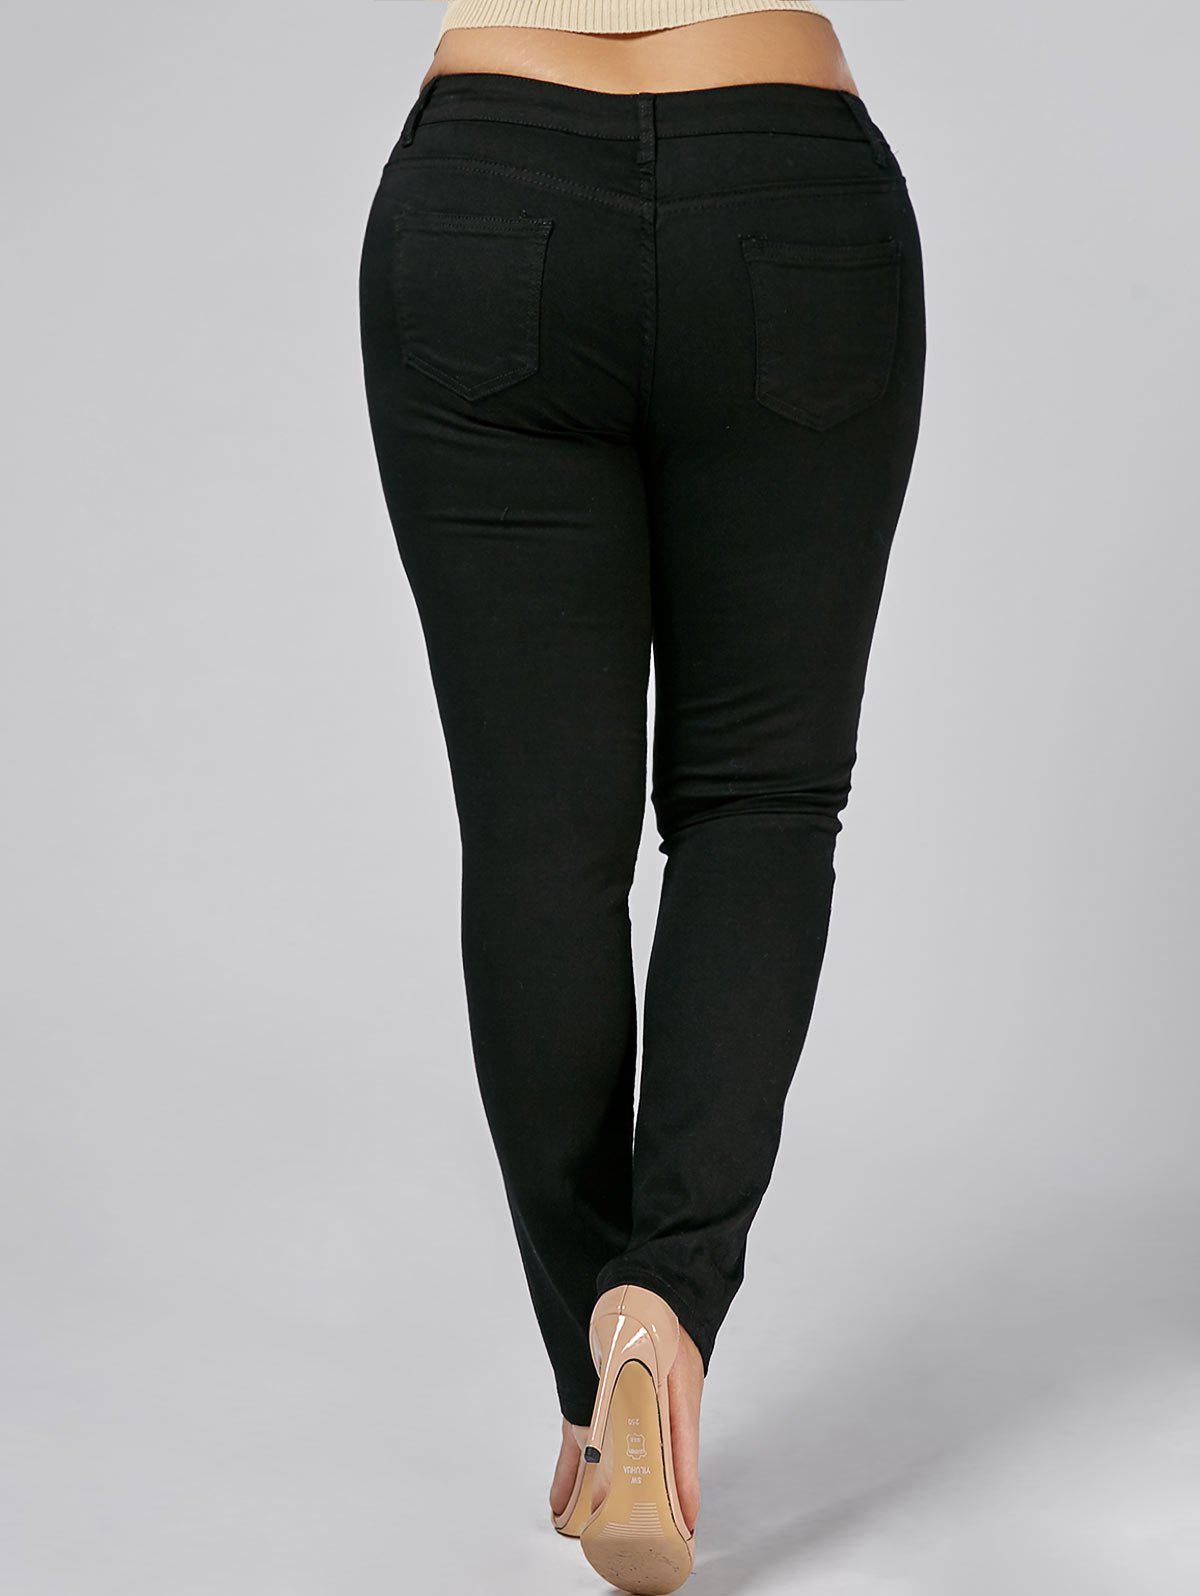 Plus Size Floral Embroidered Tight Jeans - BLACK 3XL